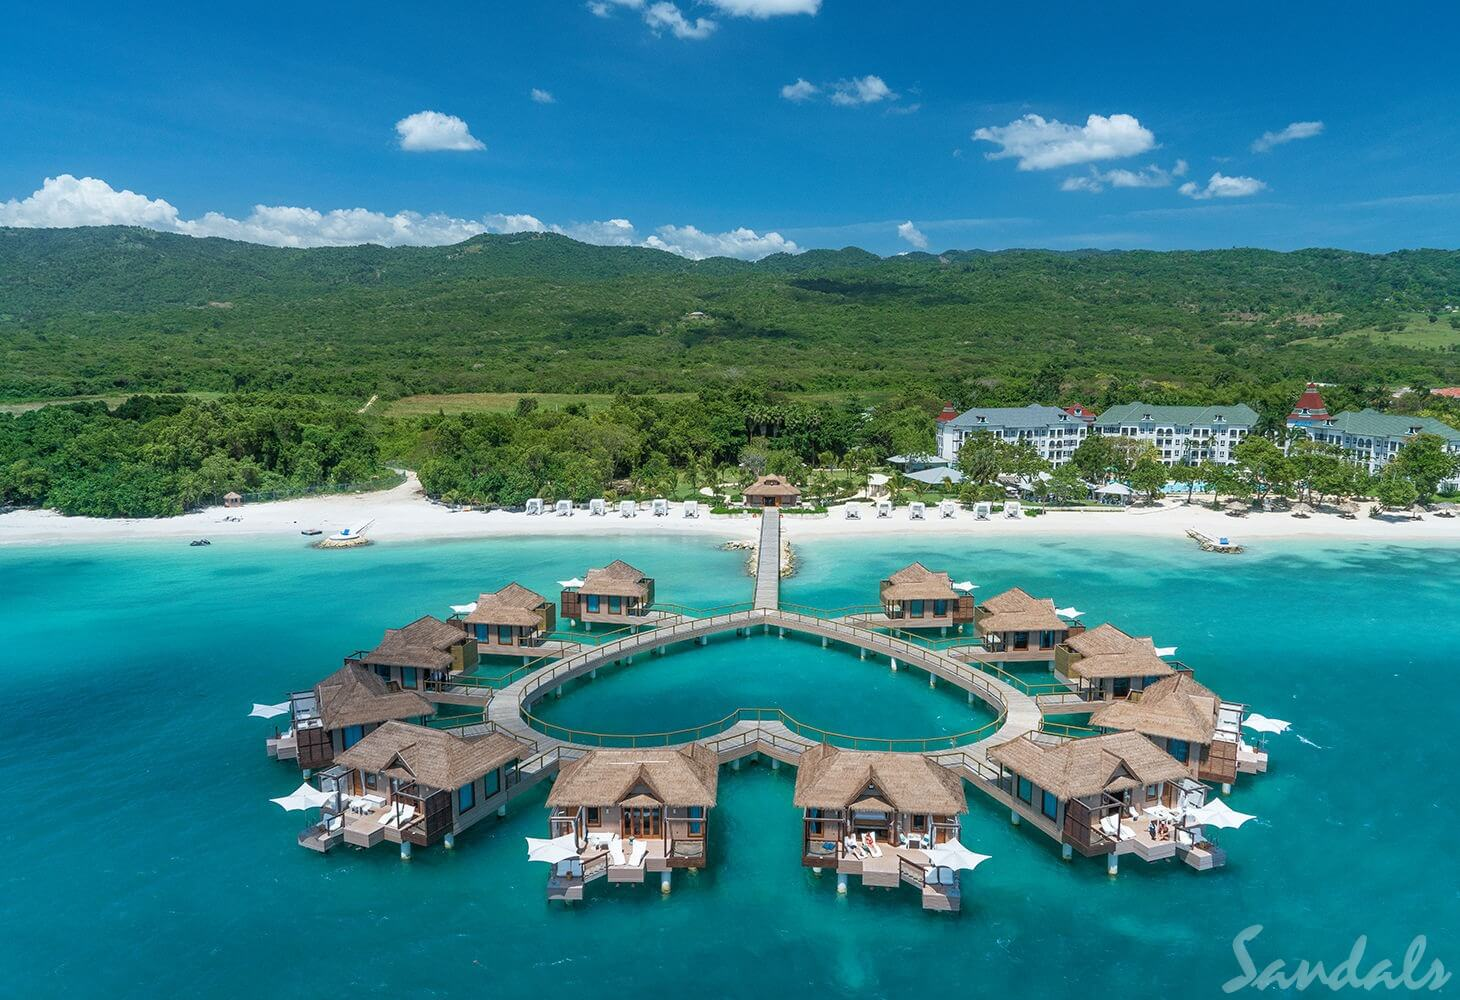 Sandals South Coast Overwater Bungalows Aerial